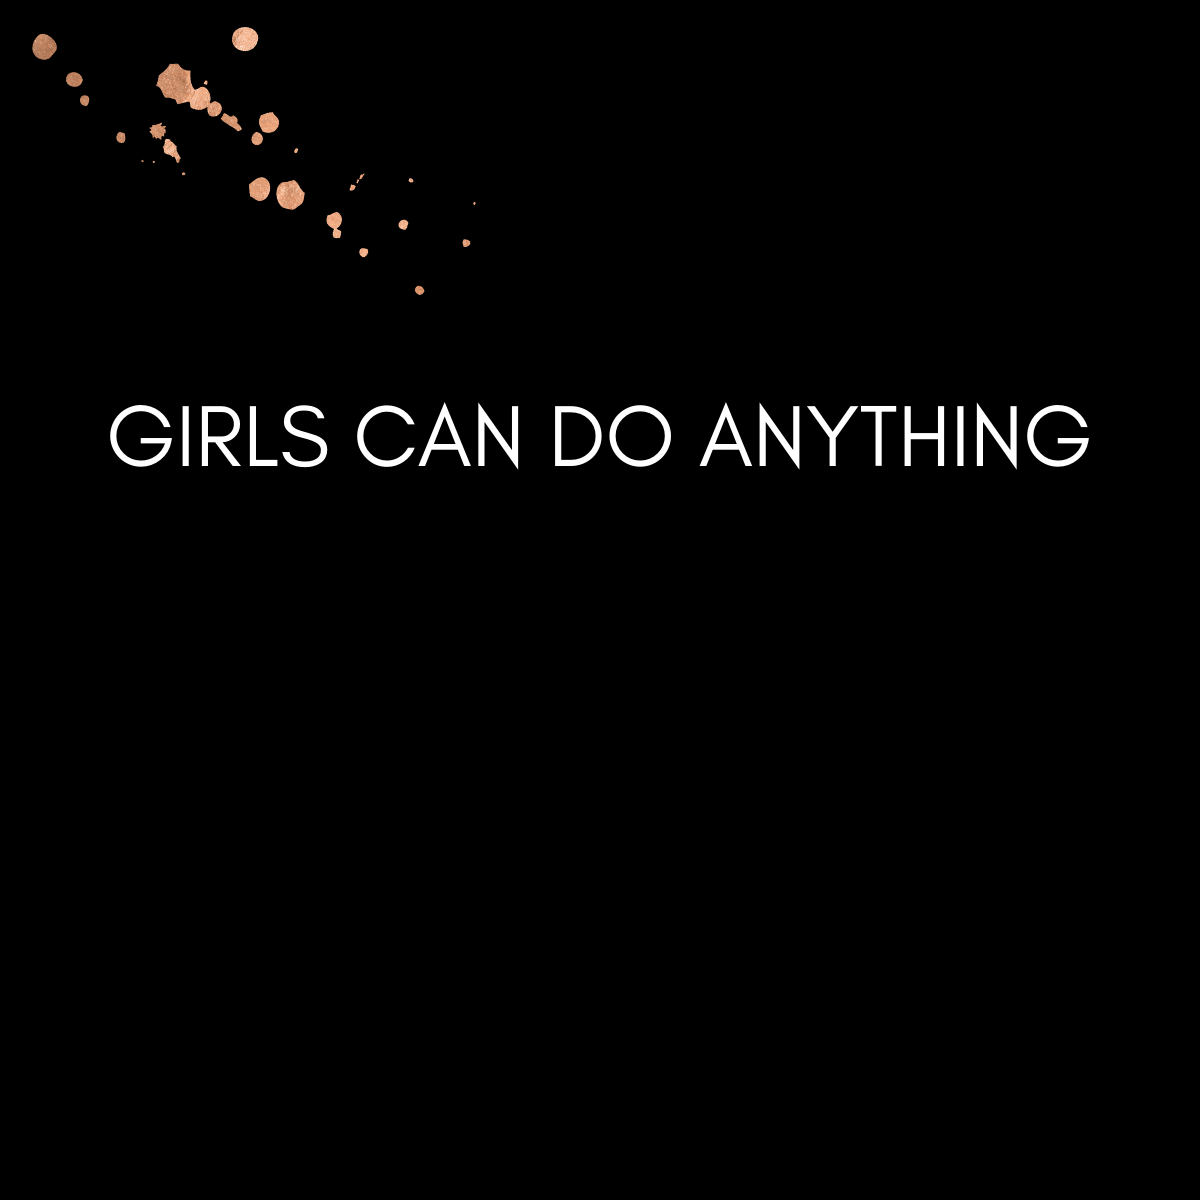 Girls Can Do Anything All Things Girl Power Collaboration Over Competition We Support Girls Supportive Lifestyle Brands Do Anything